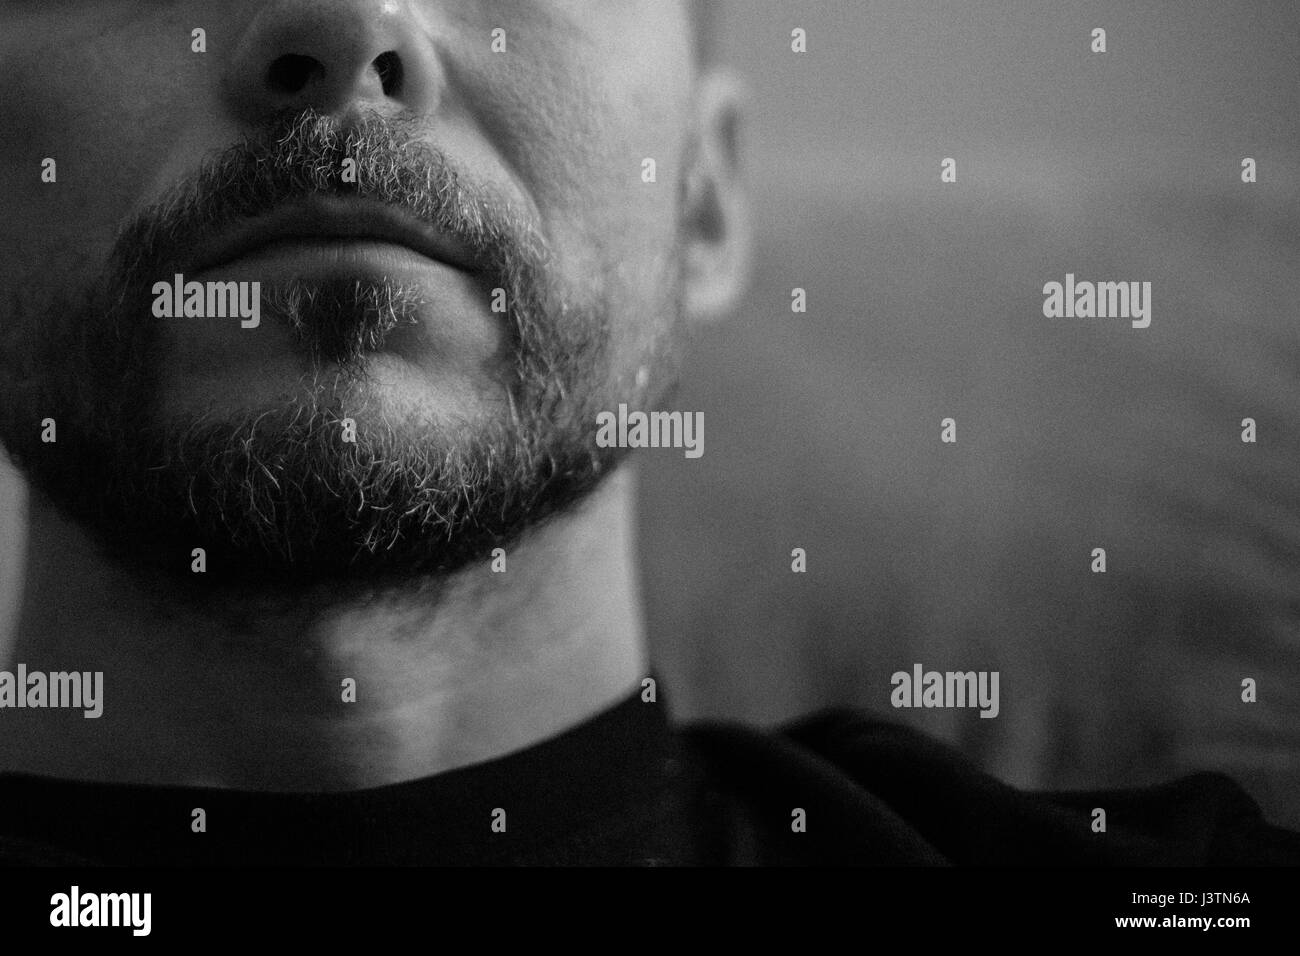 Black and white grainy portrait of a middle-aged bearded man - Stock Image